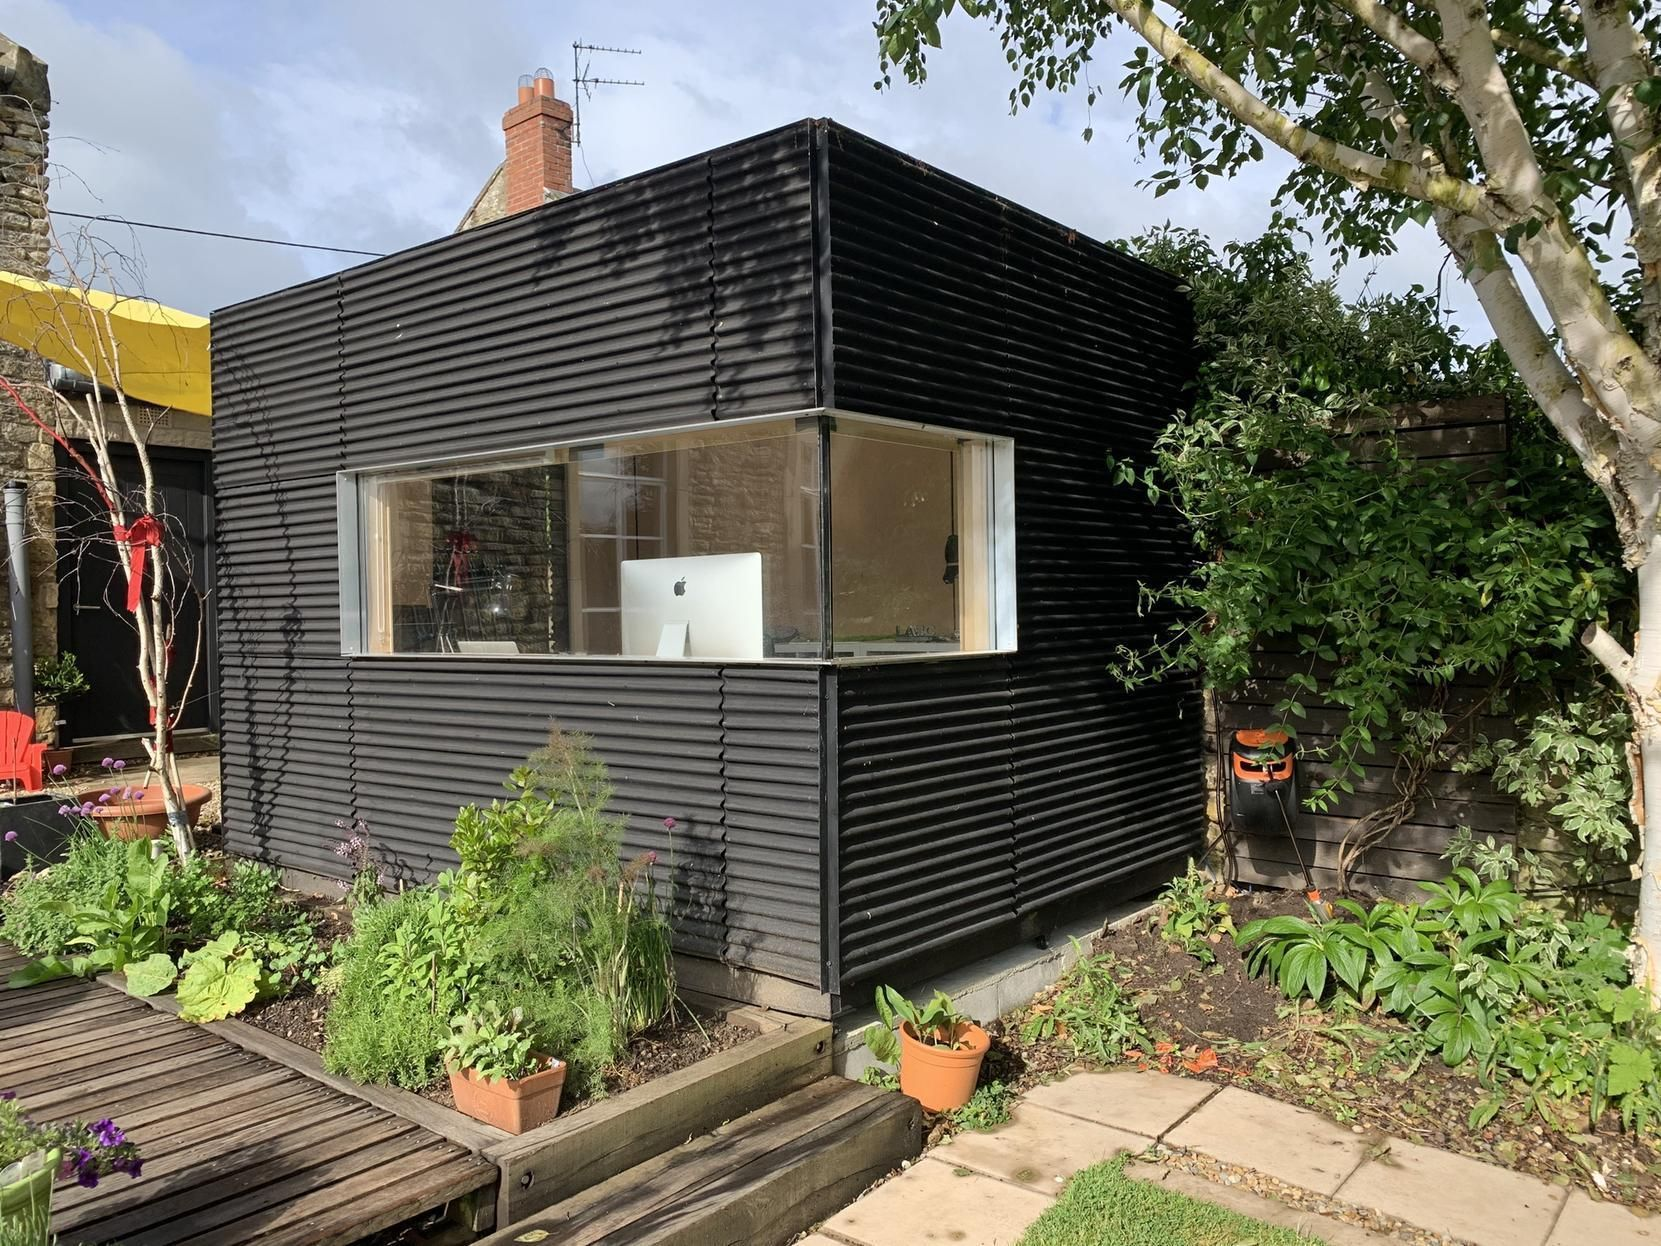 Fascinating Garden Office Designs Garden With Covered Seating Area 800 X 400 Exprimartdesign Com Garden Office Garden Cabins Garden Office Shed